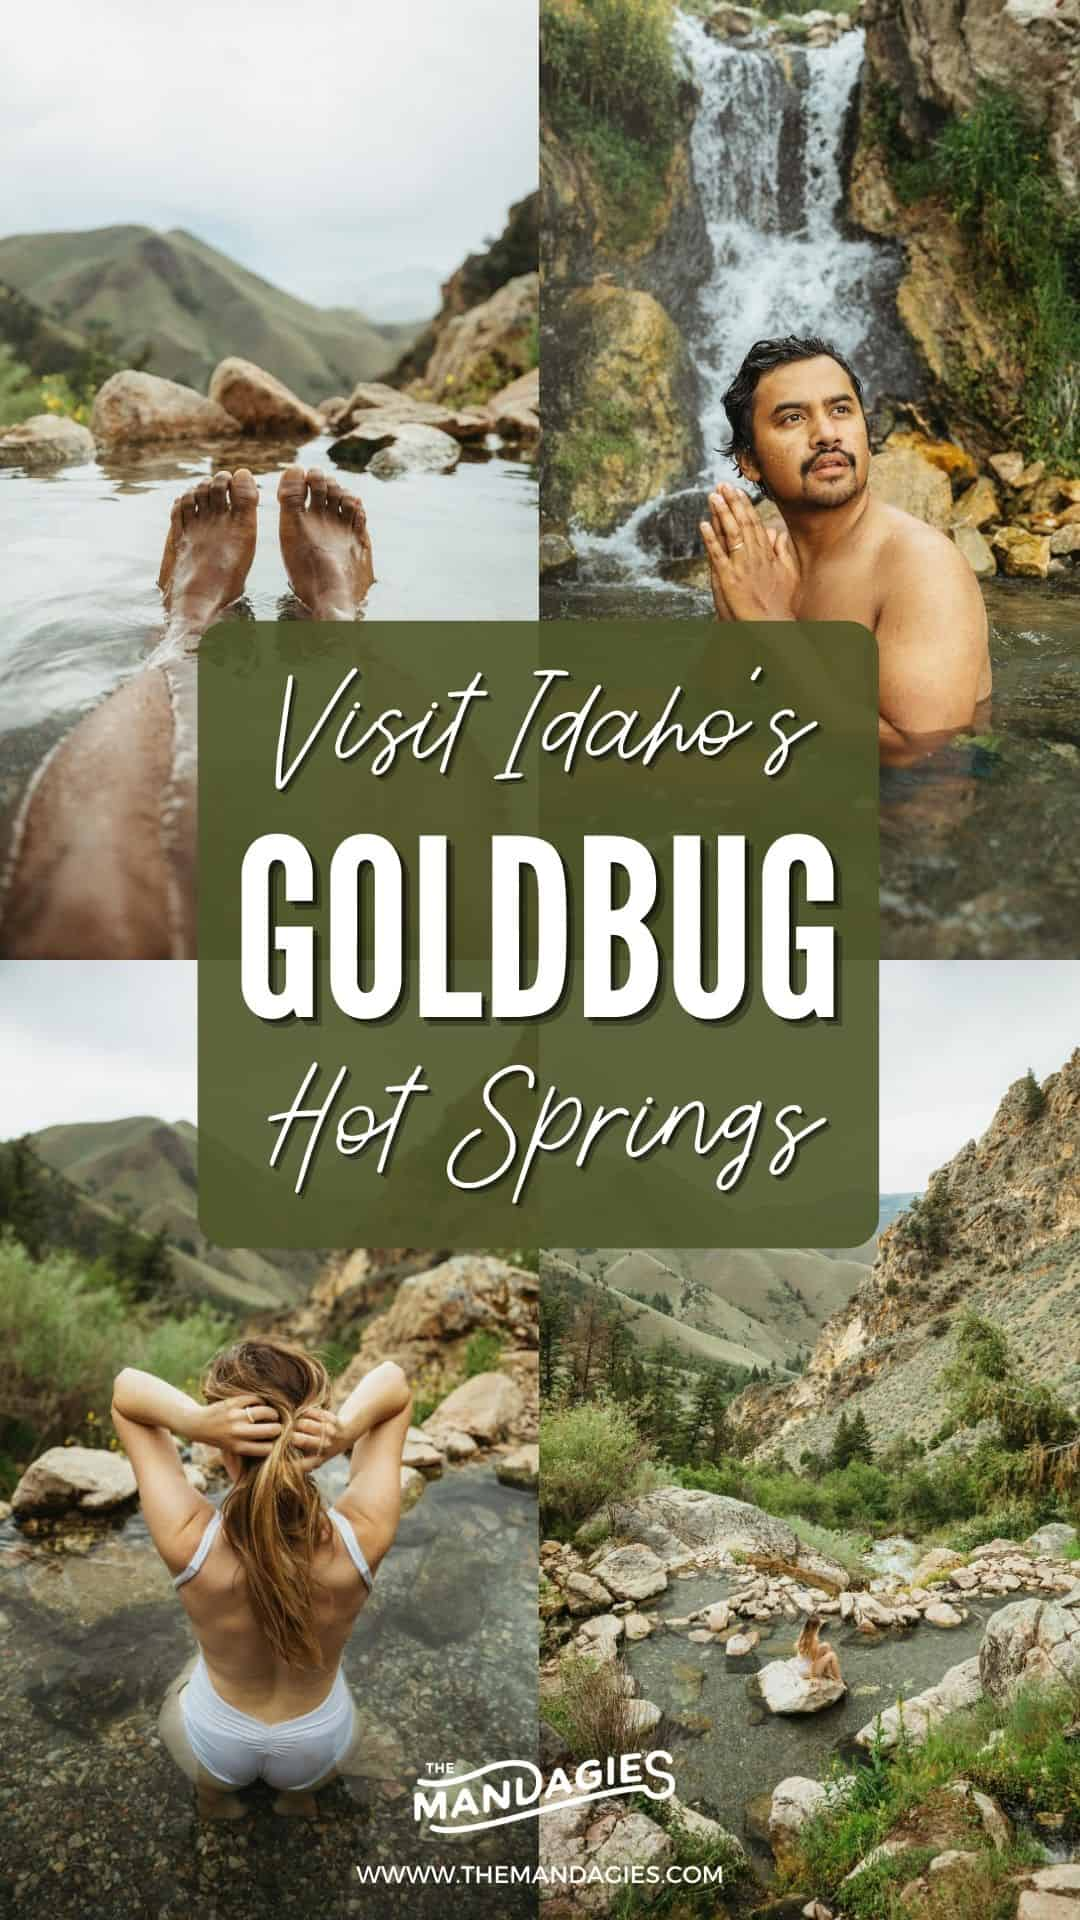 Goldbug Hot Springs is the trifecta of fun in Idaho - hiking, camping, and of course, hot springs! Click here to learn more about planning your own rad trip, and what to expect on the trail, rules for camping, and all the details to plan your own magical getaway in the Gem State. #idaho #hotsprings #stanleyidaho #Roadtrip #summer #hiking #camping #salmonriver #goldbug #mountains #travel #USAtravel #usa #photography #sunset